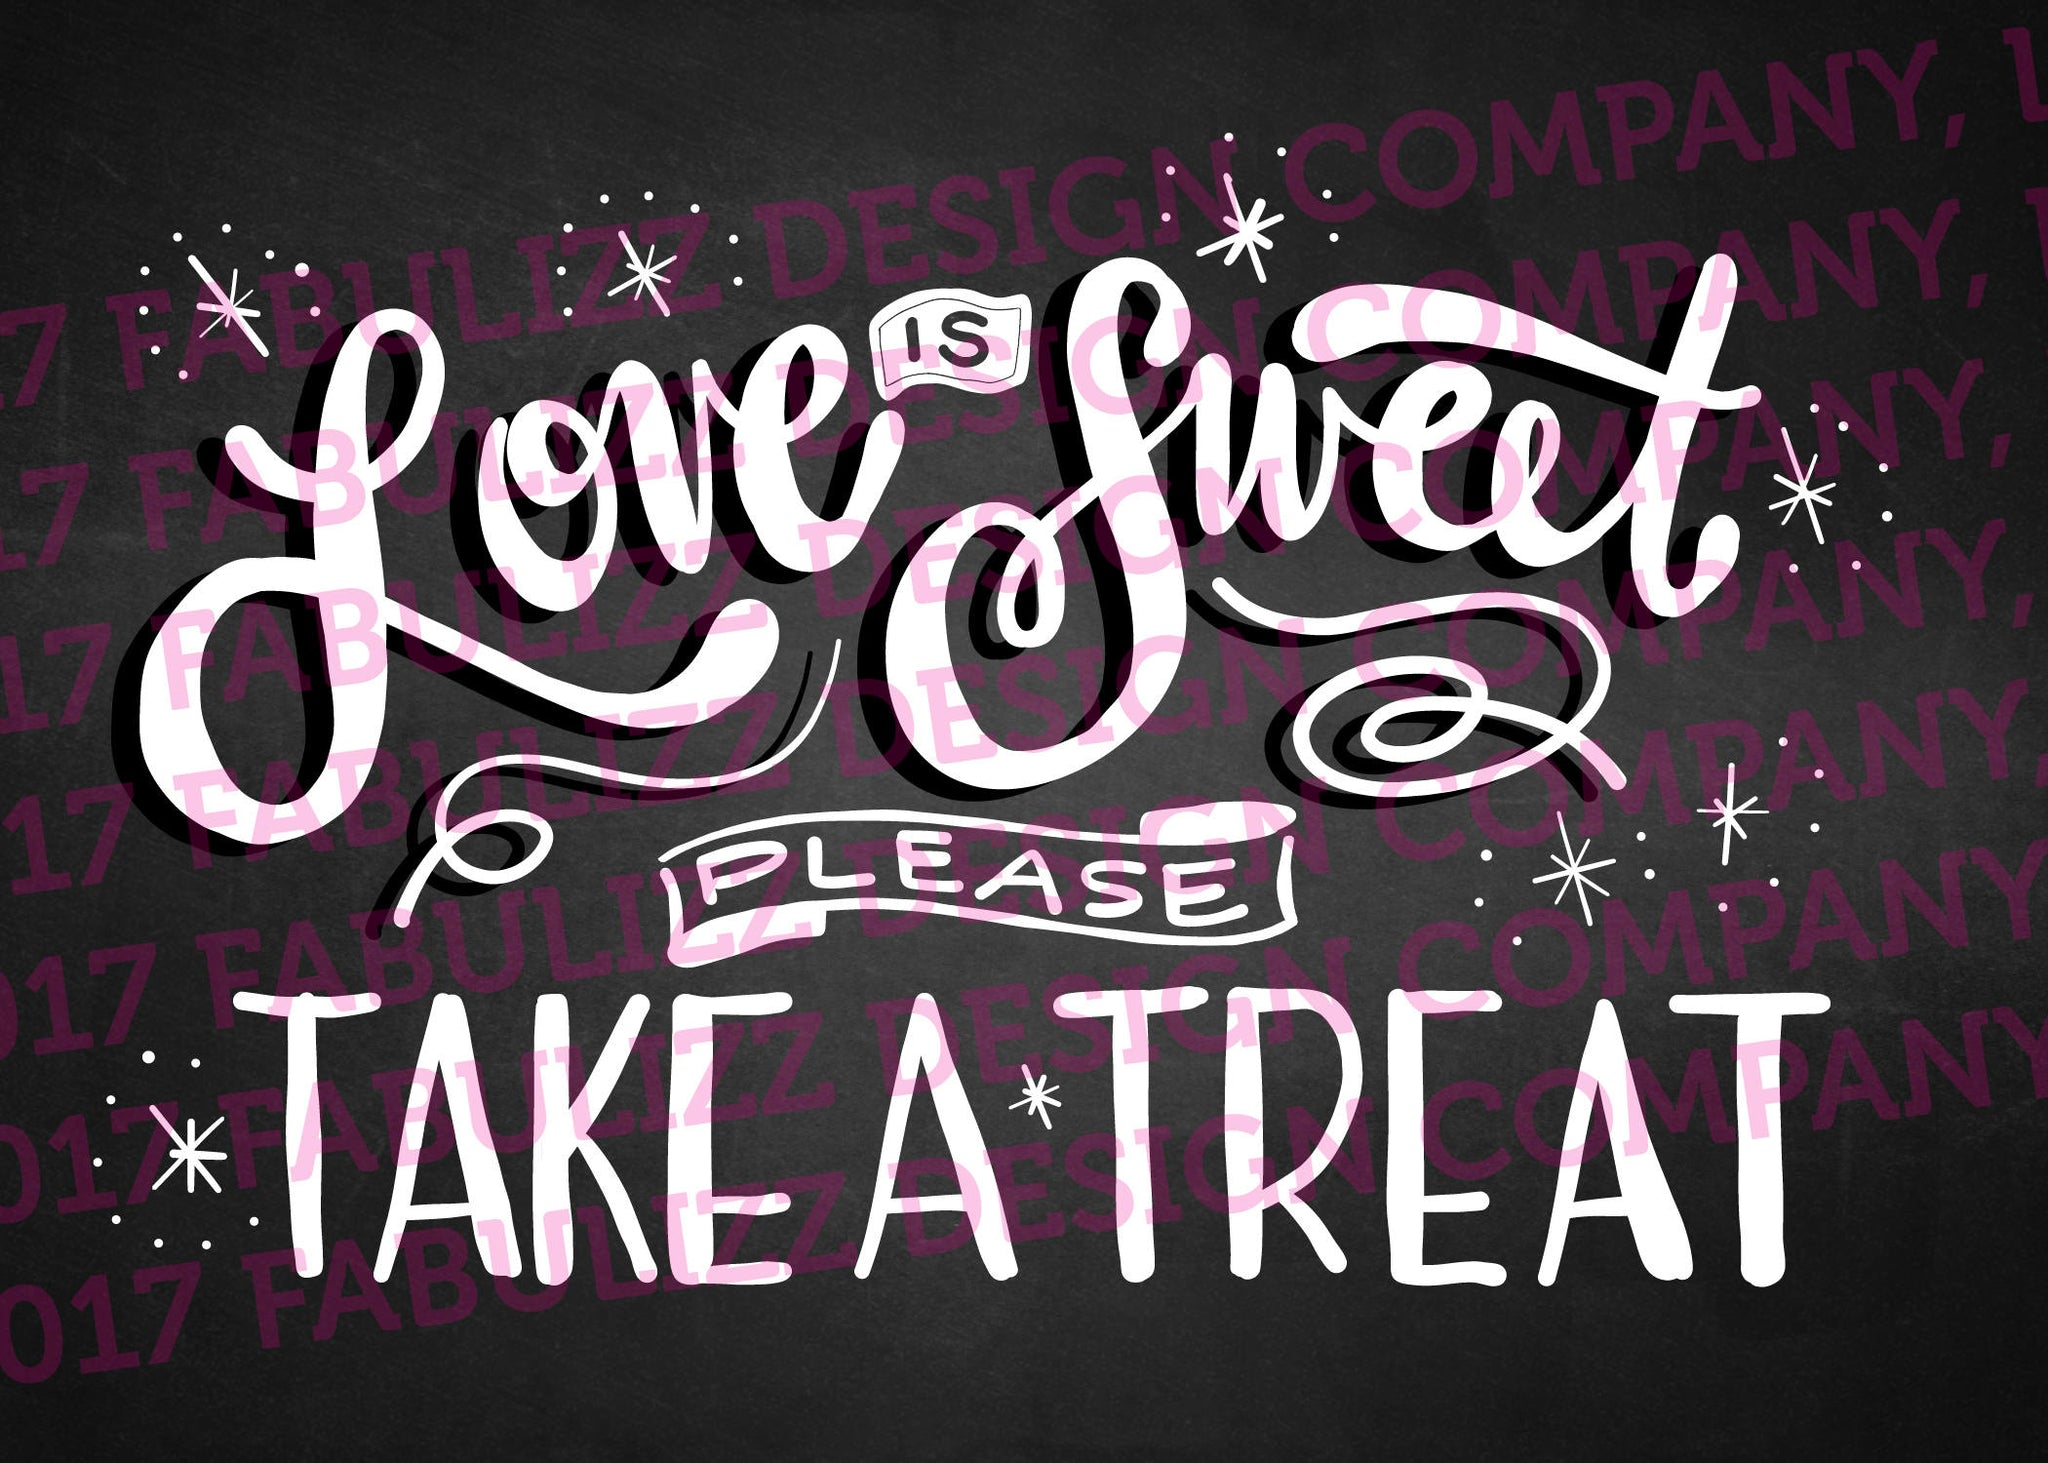 "Wedding Sign - Love us Sweet Please Take A Treat - Digital Art - 5"" x 7"""